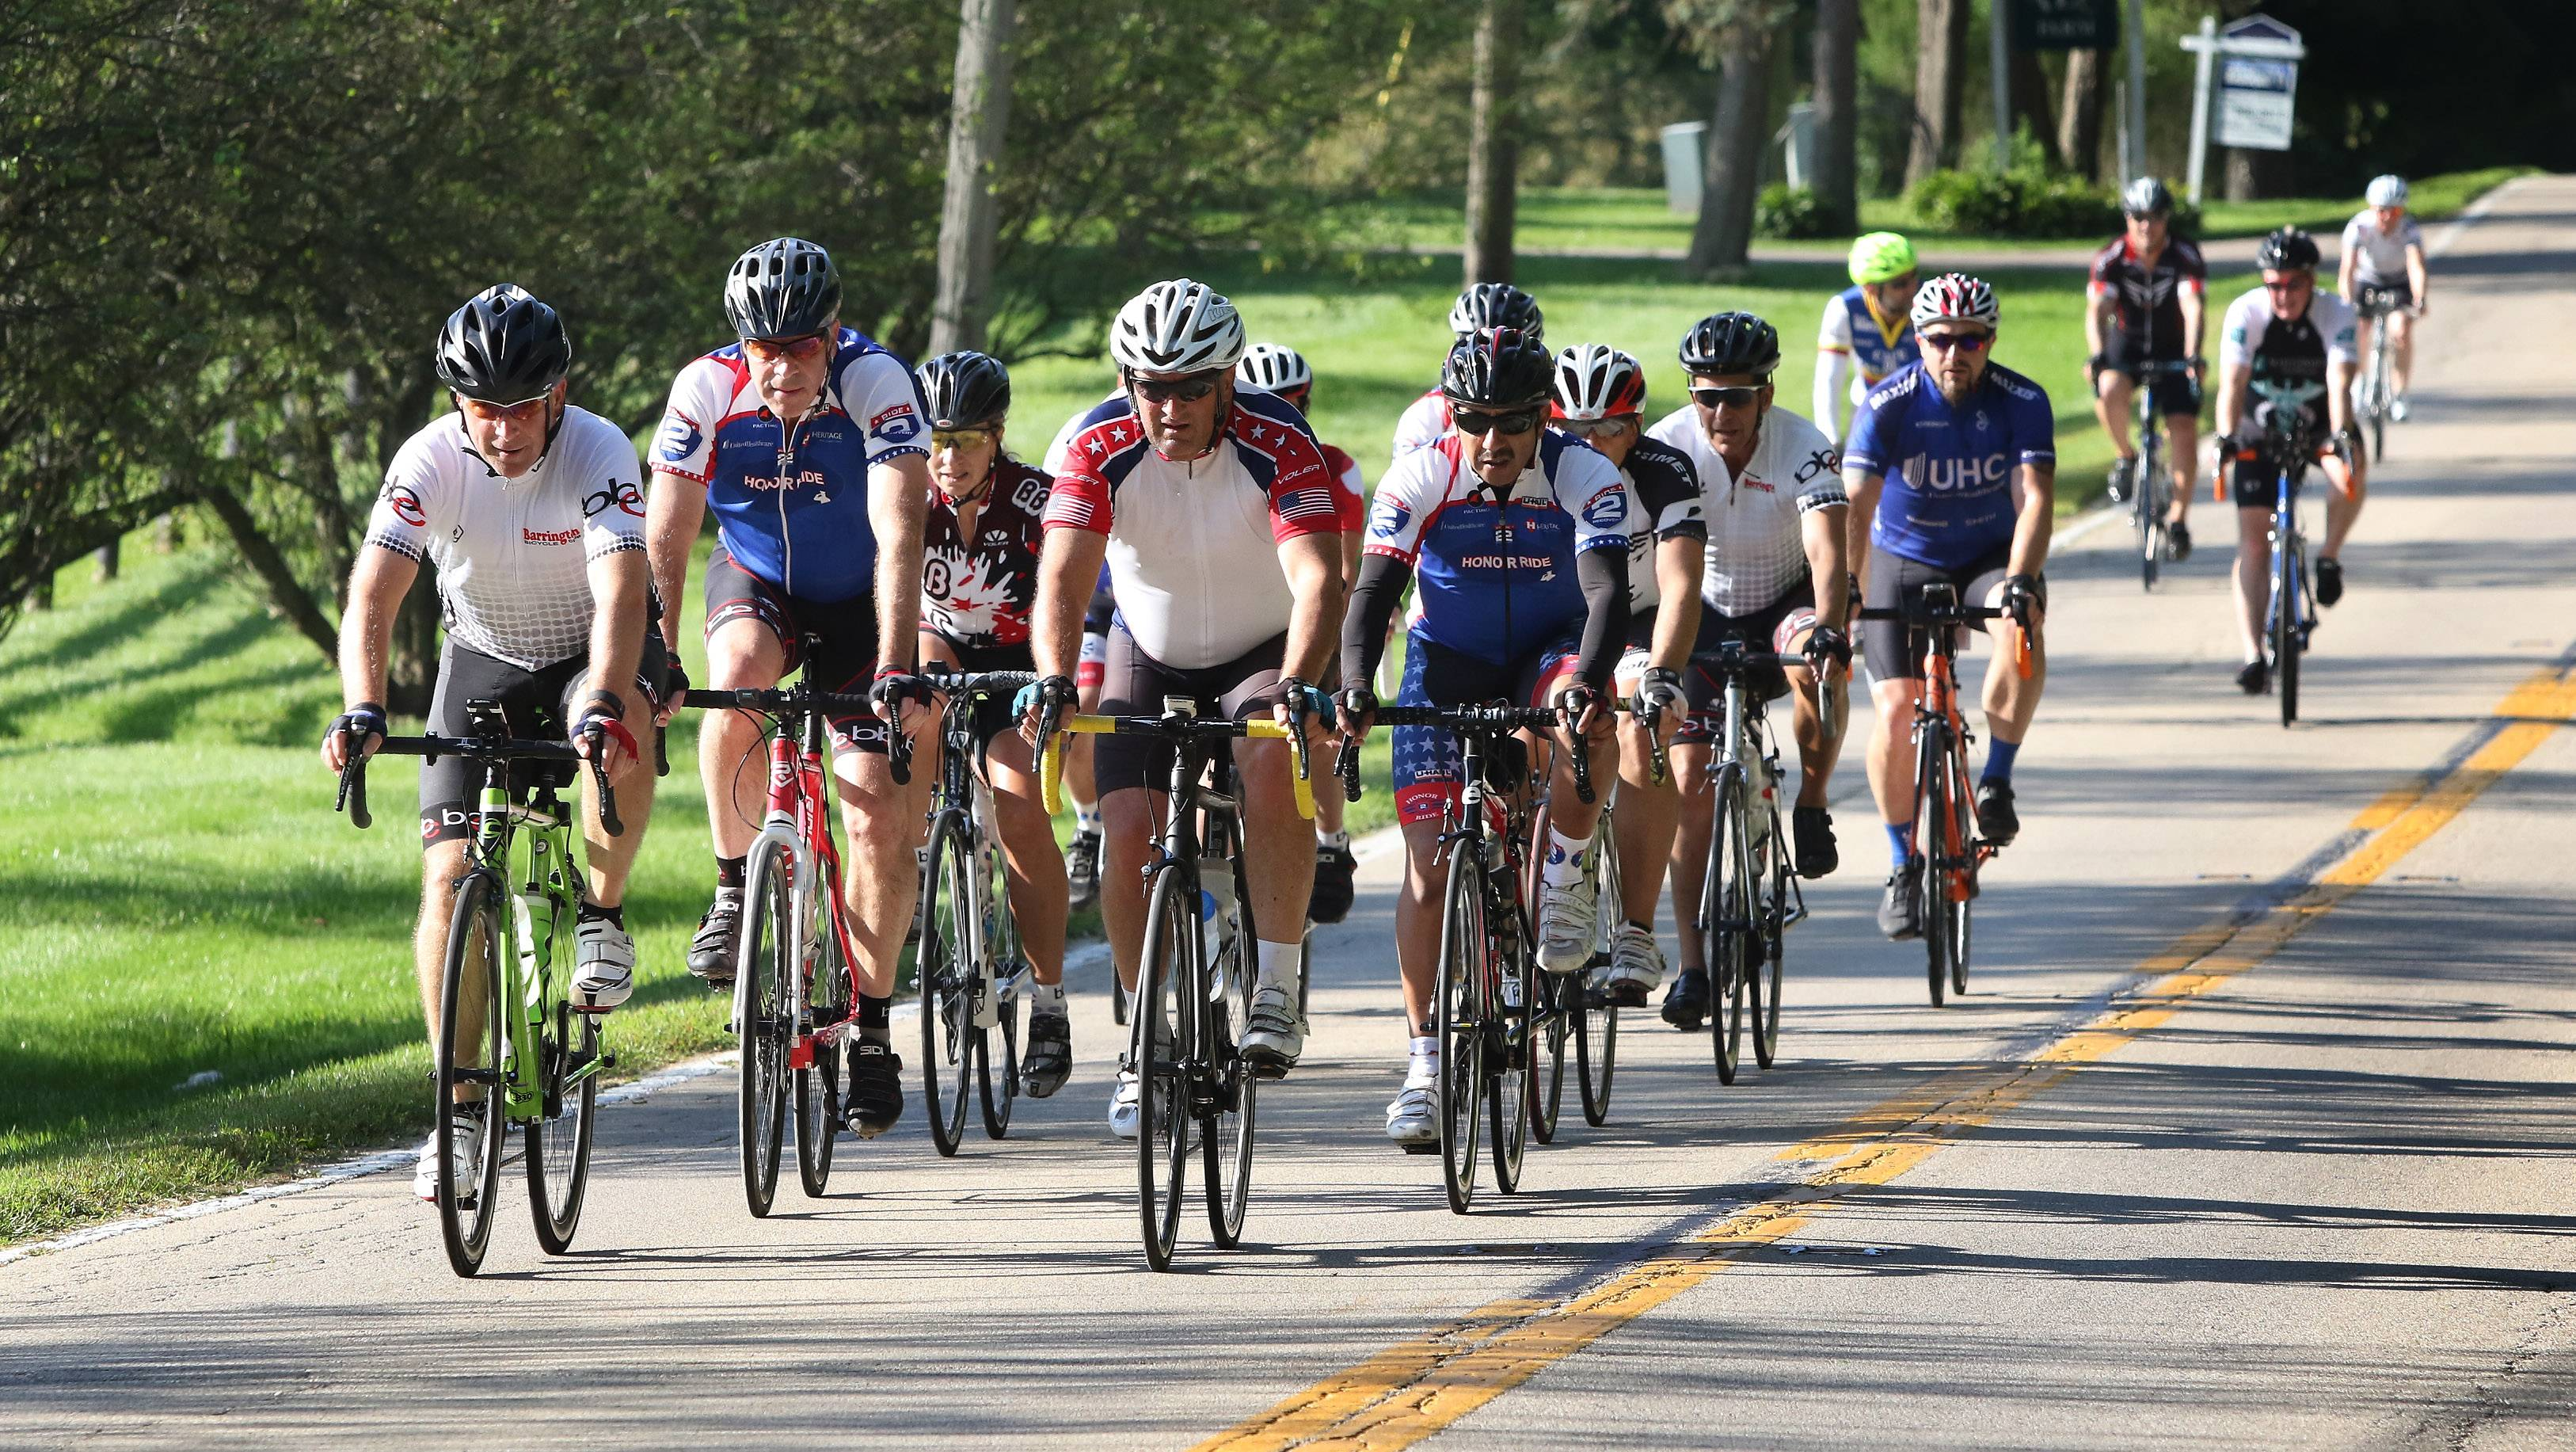 Cyclists make their way along Old Sutton Road during the 2017 Project Hero Barrington Honor Ride in Barrington Hills on Sunday. Hundreds of cyclists participated, including riders from the 500-mile UnitedHealthcare Great Lakes Challenge, raising money to help wounded veterans and first responders.